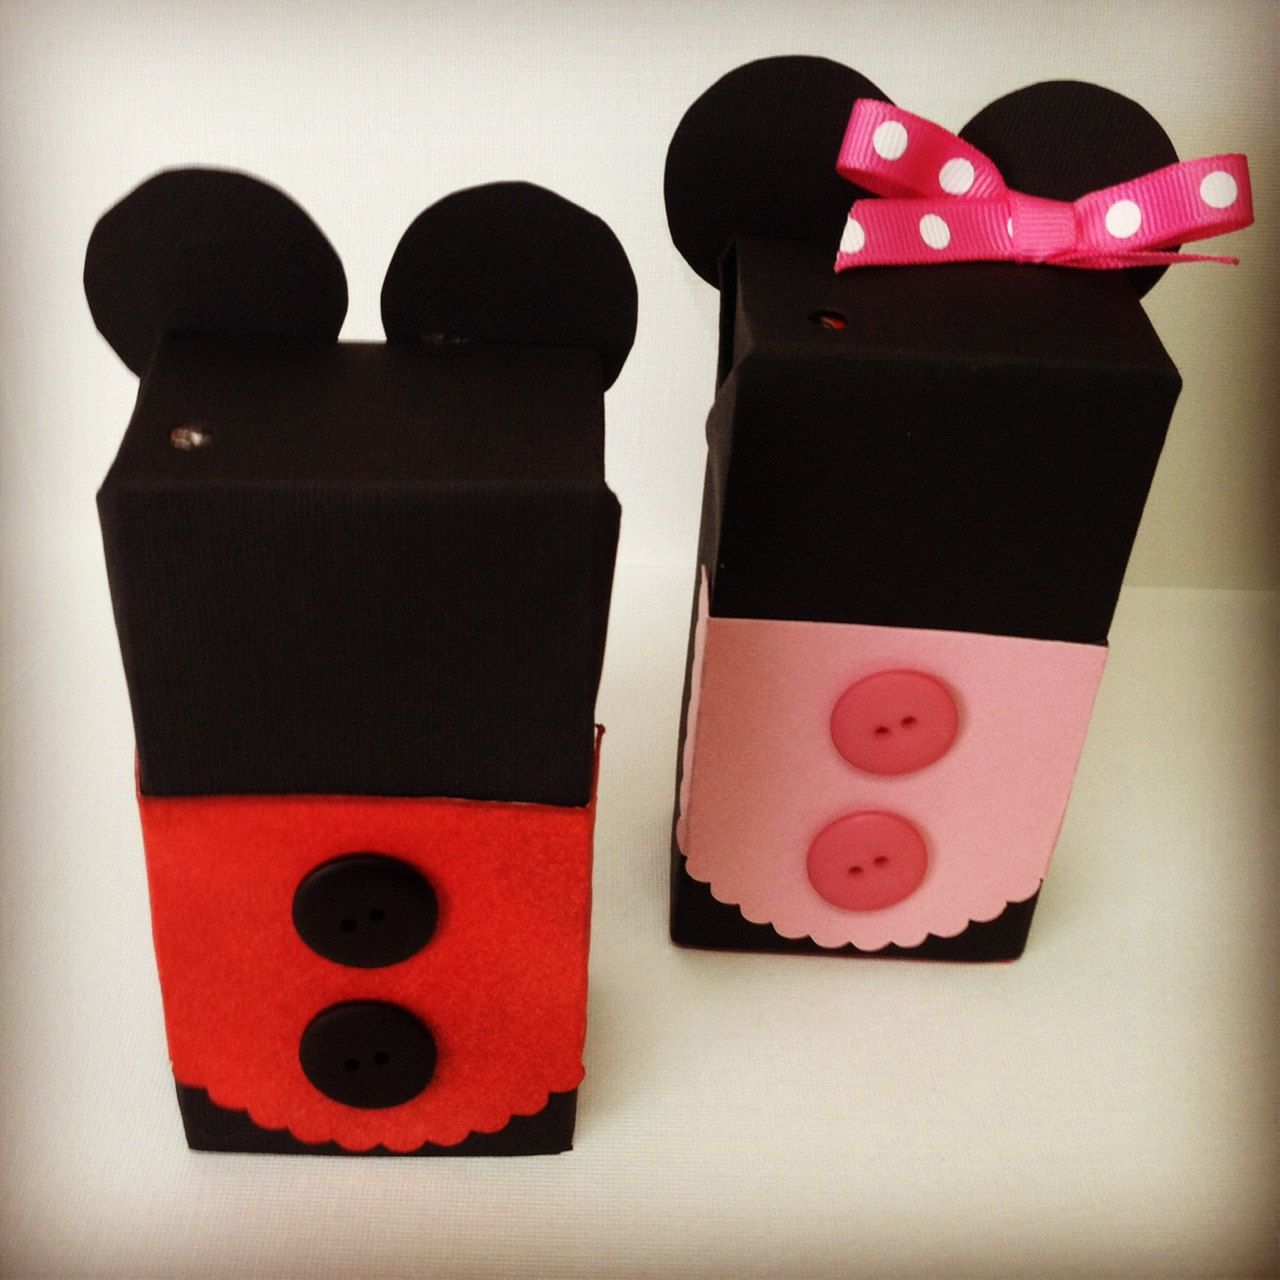 Mickey Mouse Minnie Mouse Juice Box Covers 3600 Via